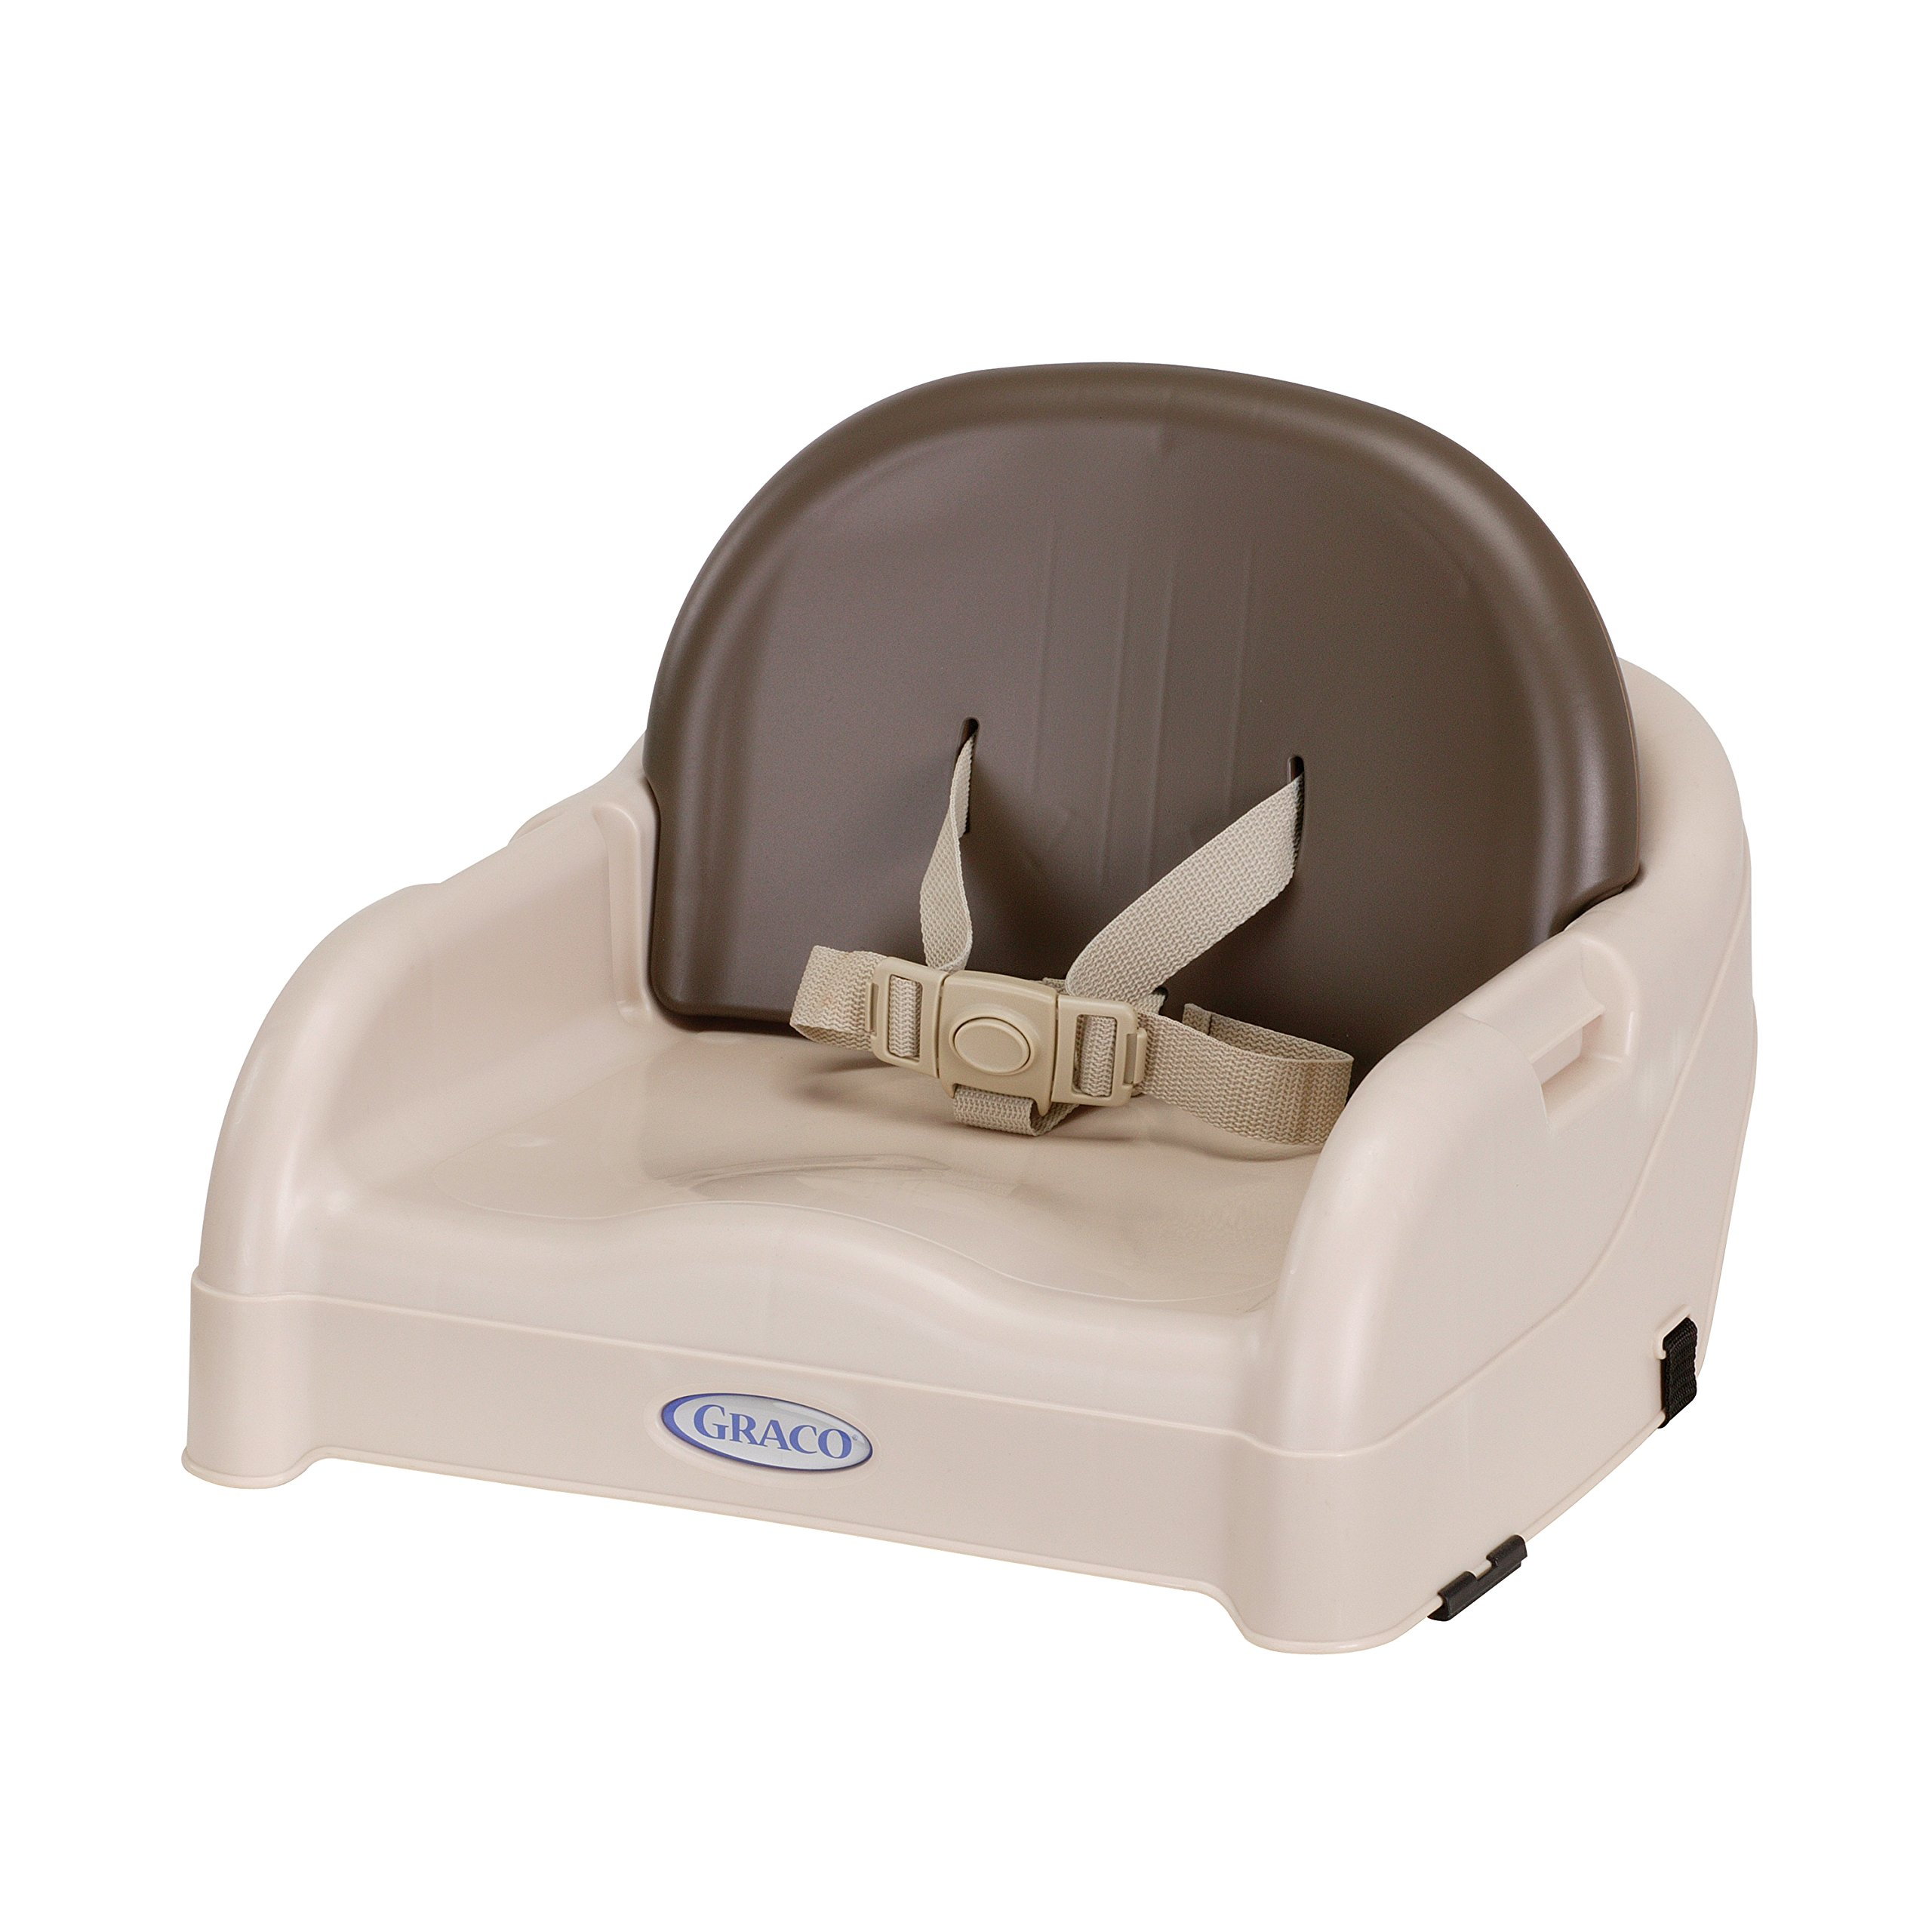 Graco Blossom Booster Seat, Brown/Tan by Graco